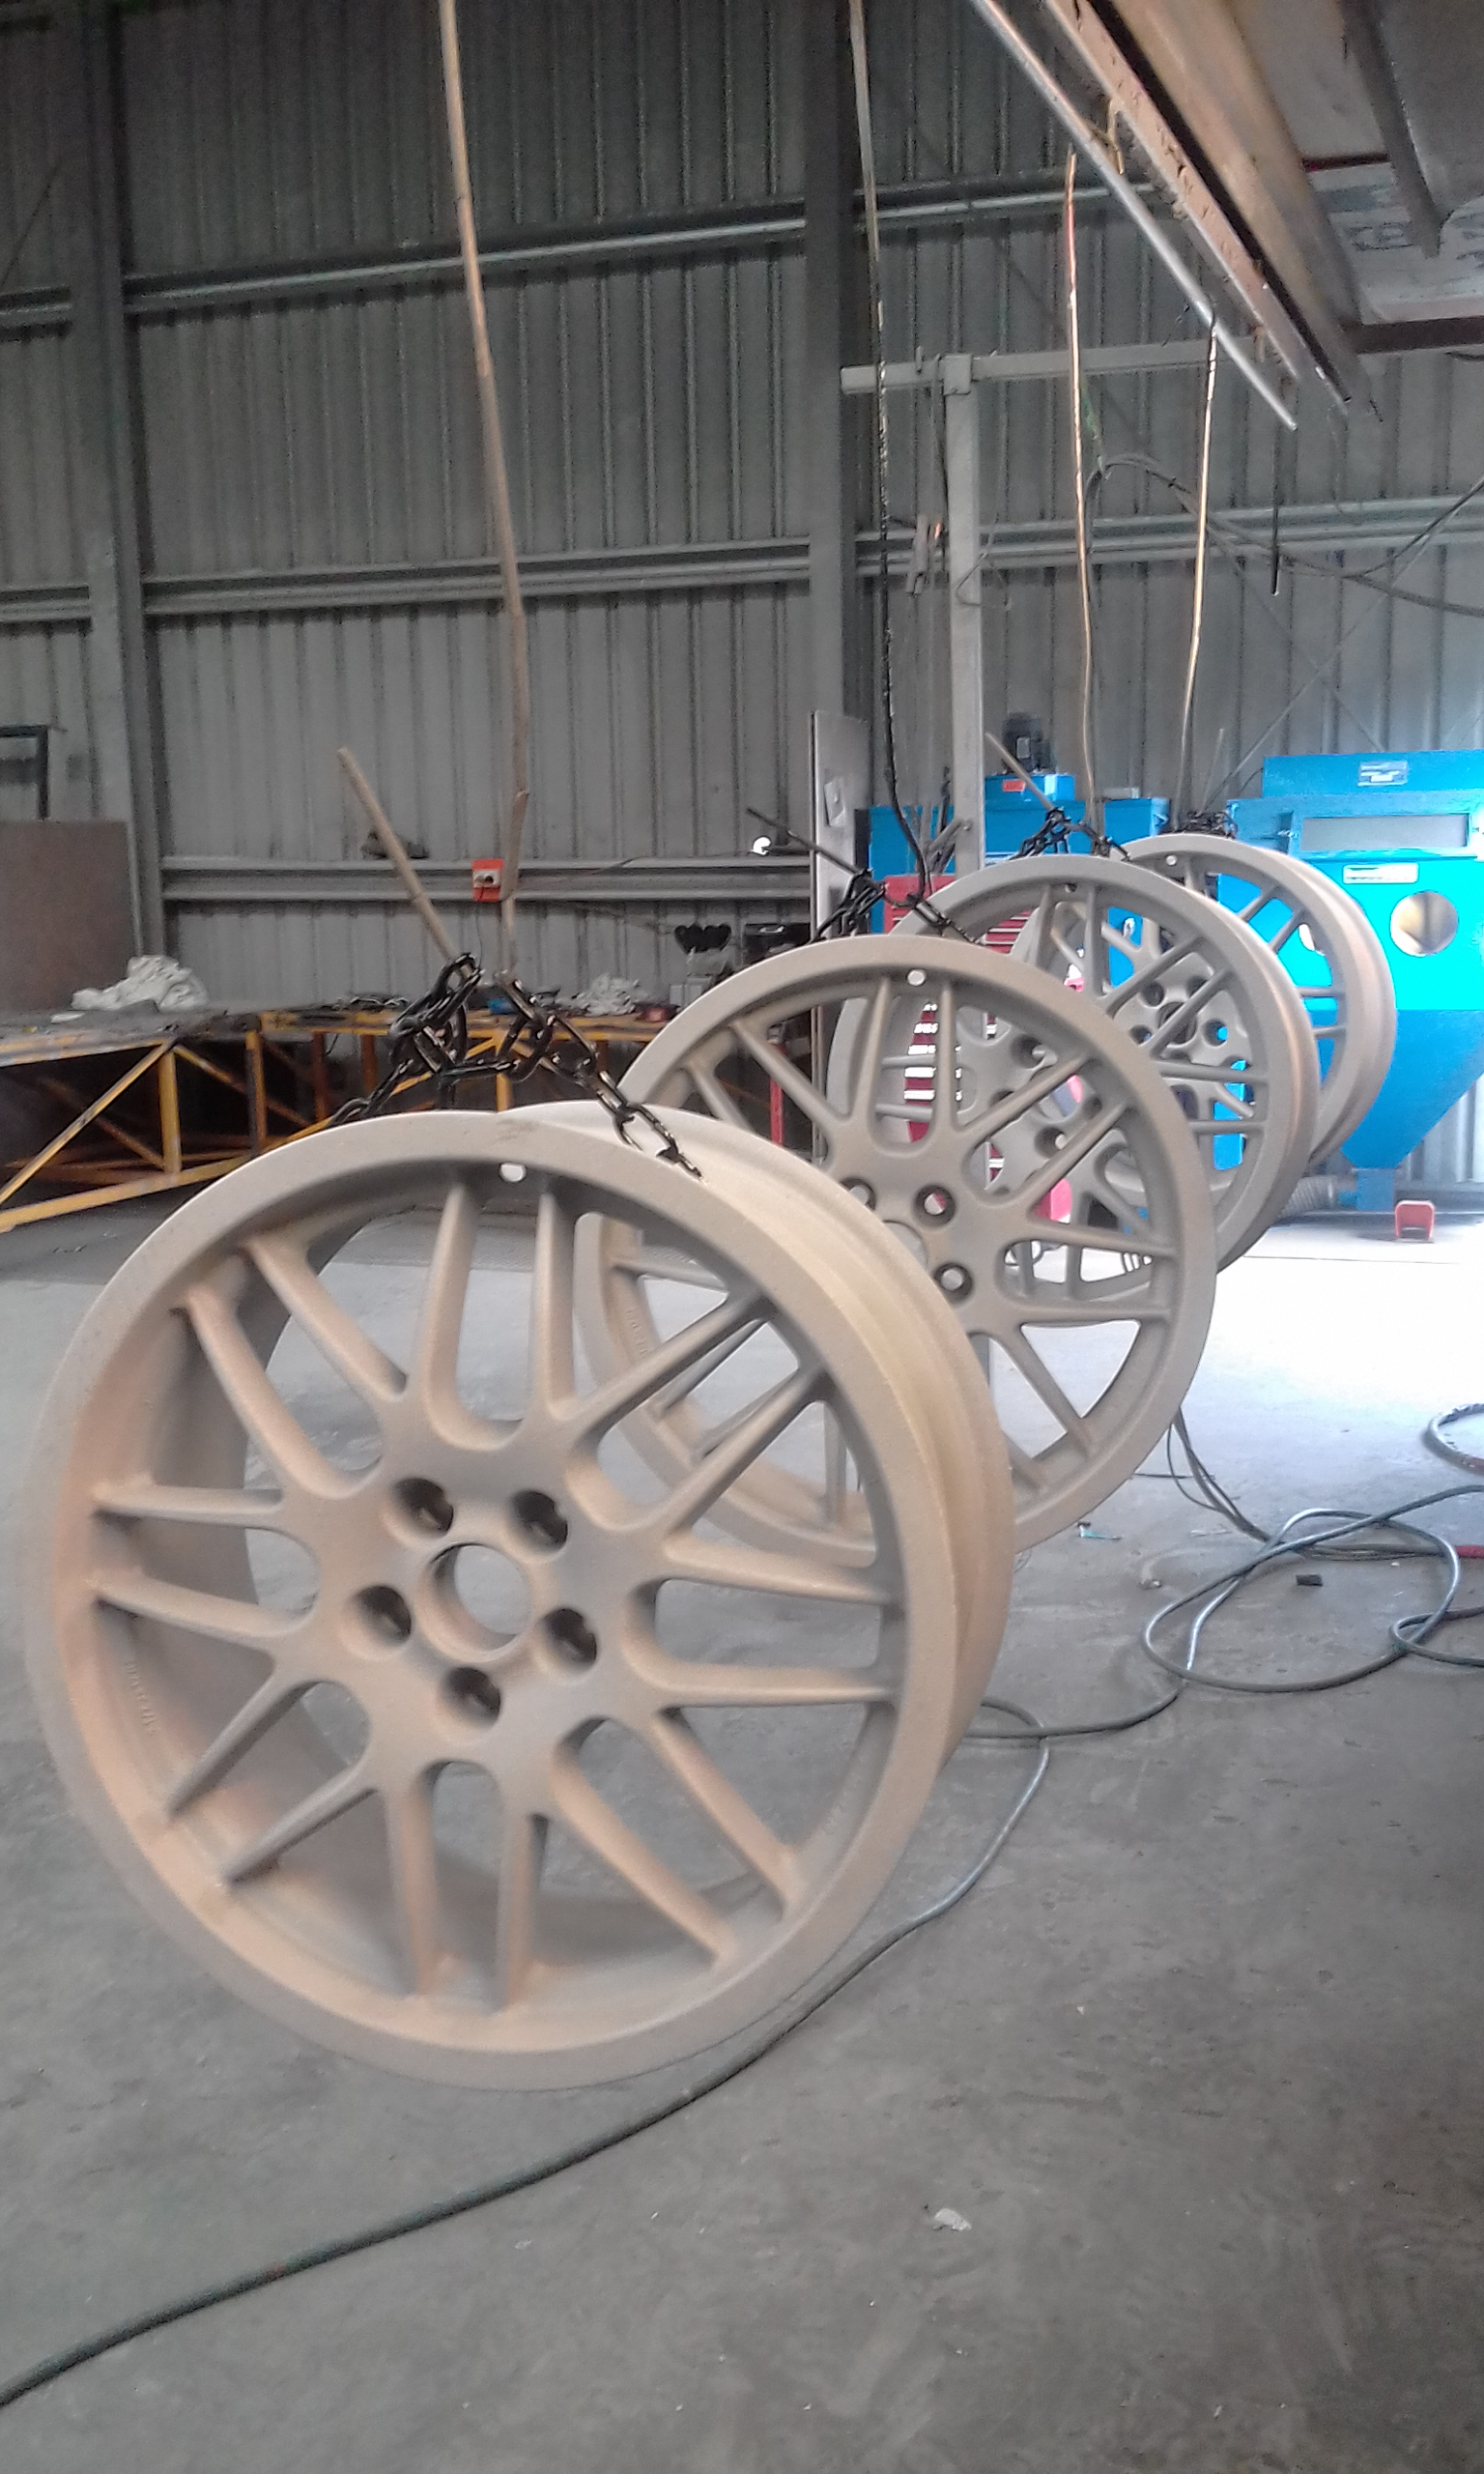 Abrasive blasting - Glass - Wheels blasted by SODABLAST ACT